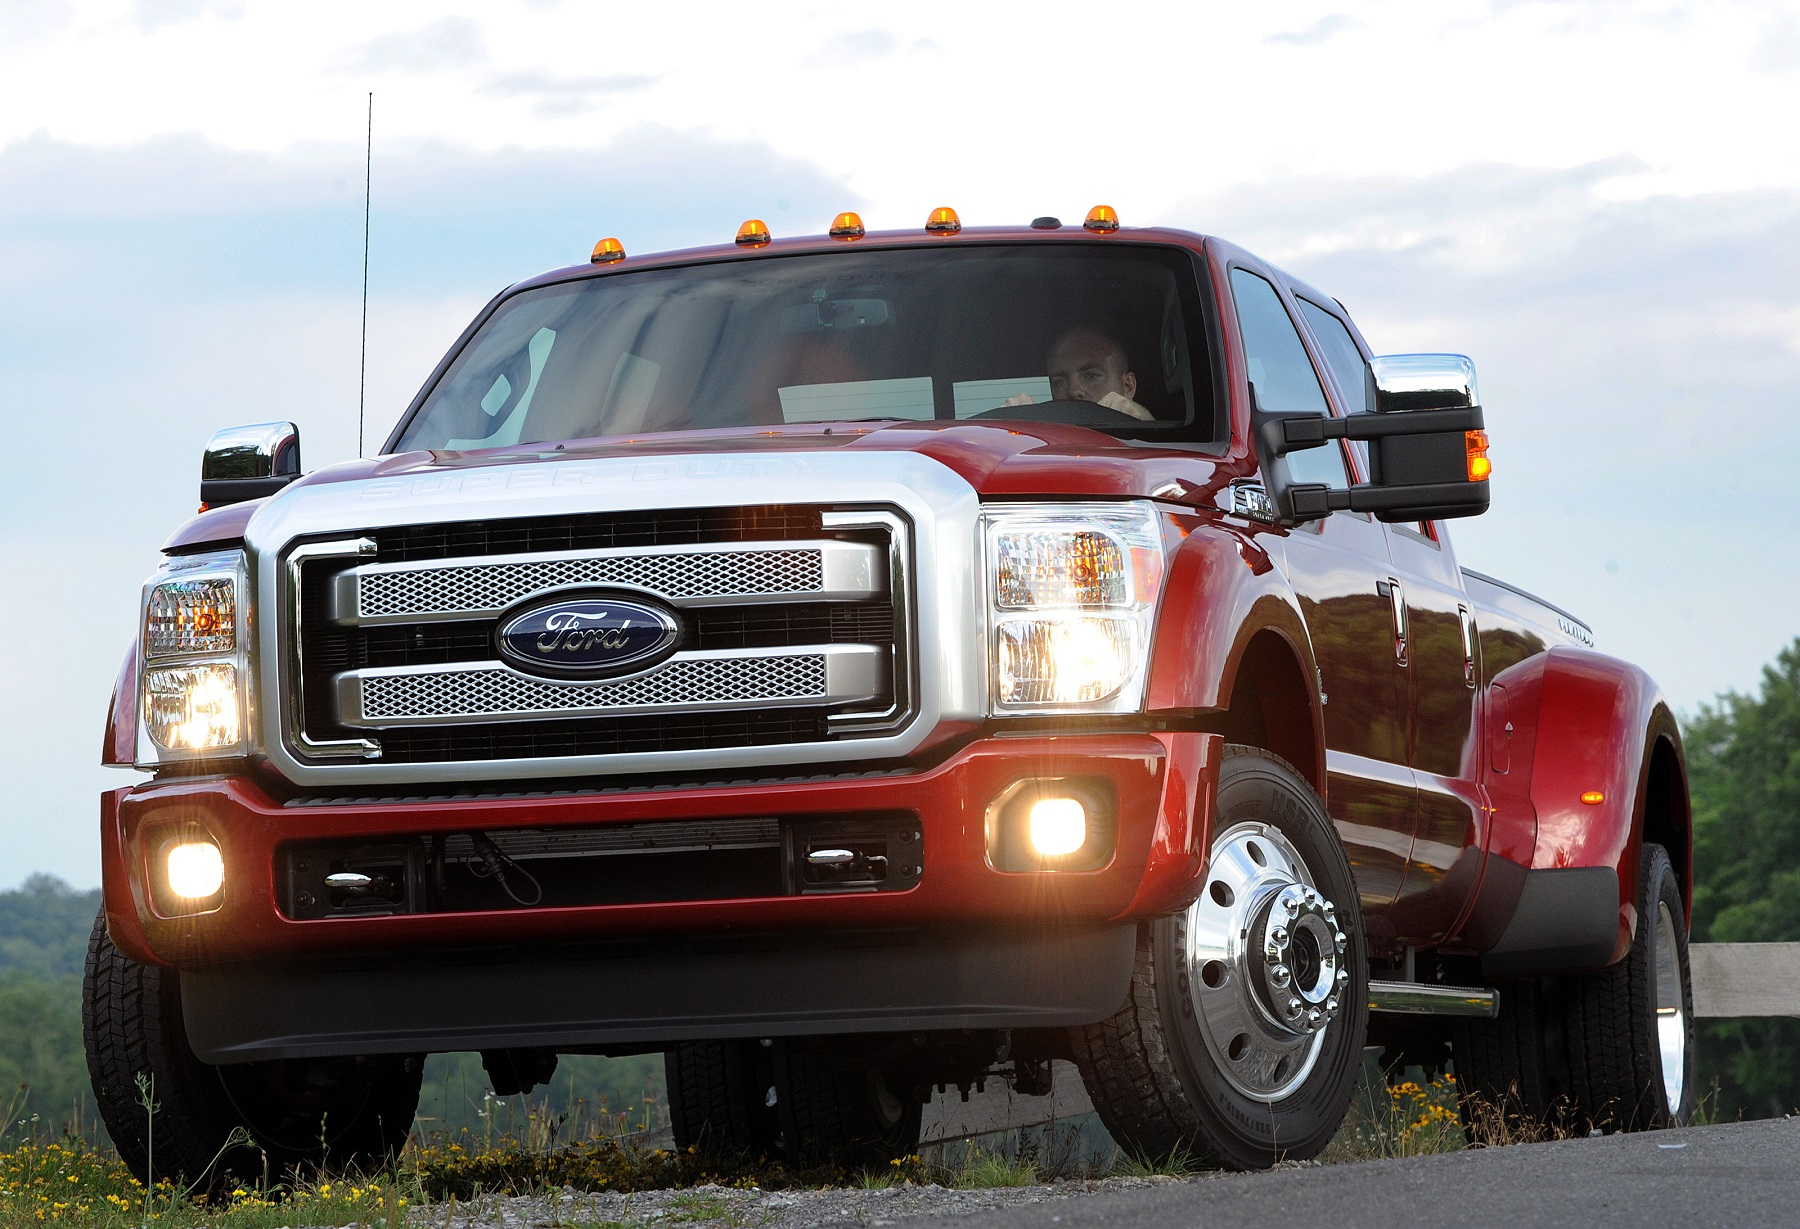 Manufacturer photo: The 2015 Super Duty achieves best-in-class towing performance with a second-generation Power Stroke engine that has been further developed to provide more power, torque and efficiency